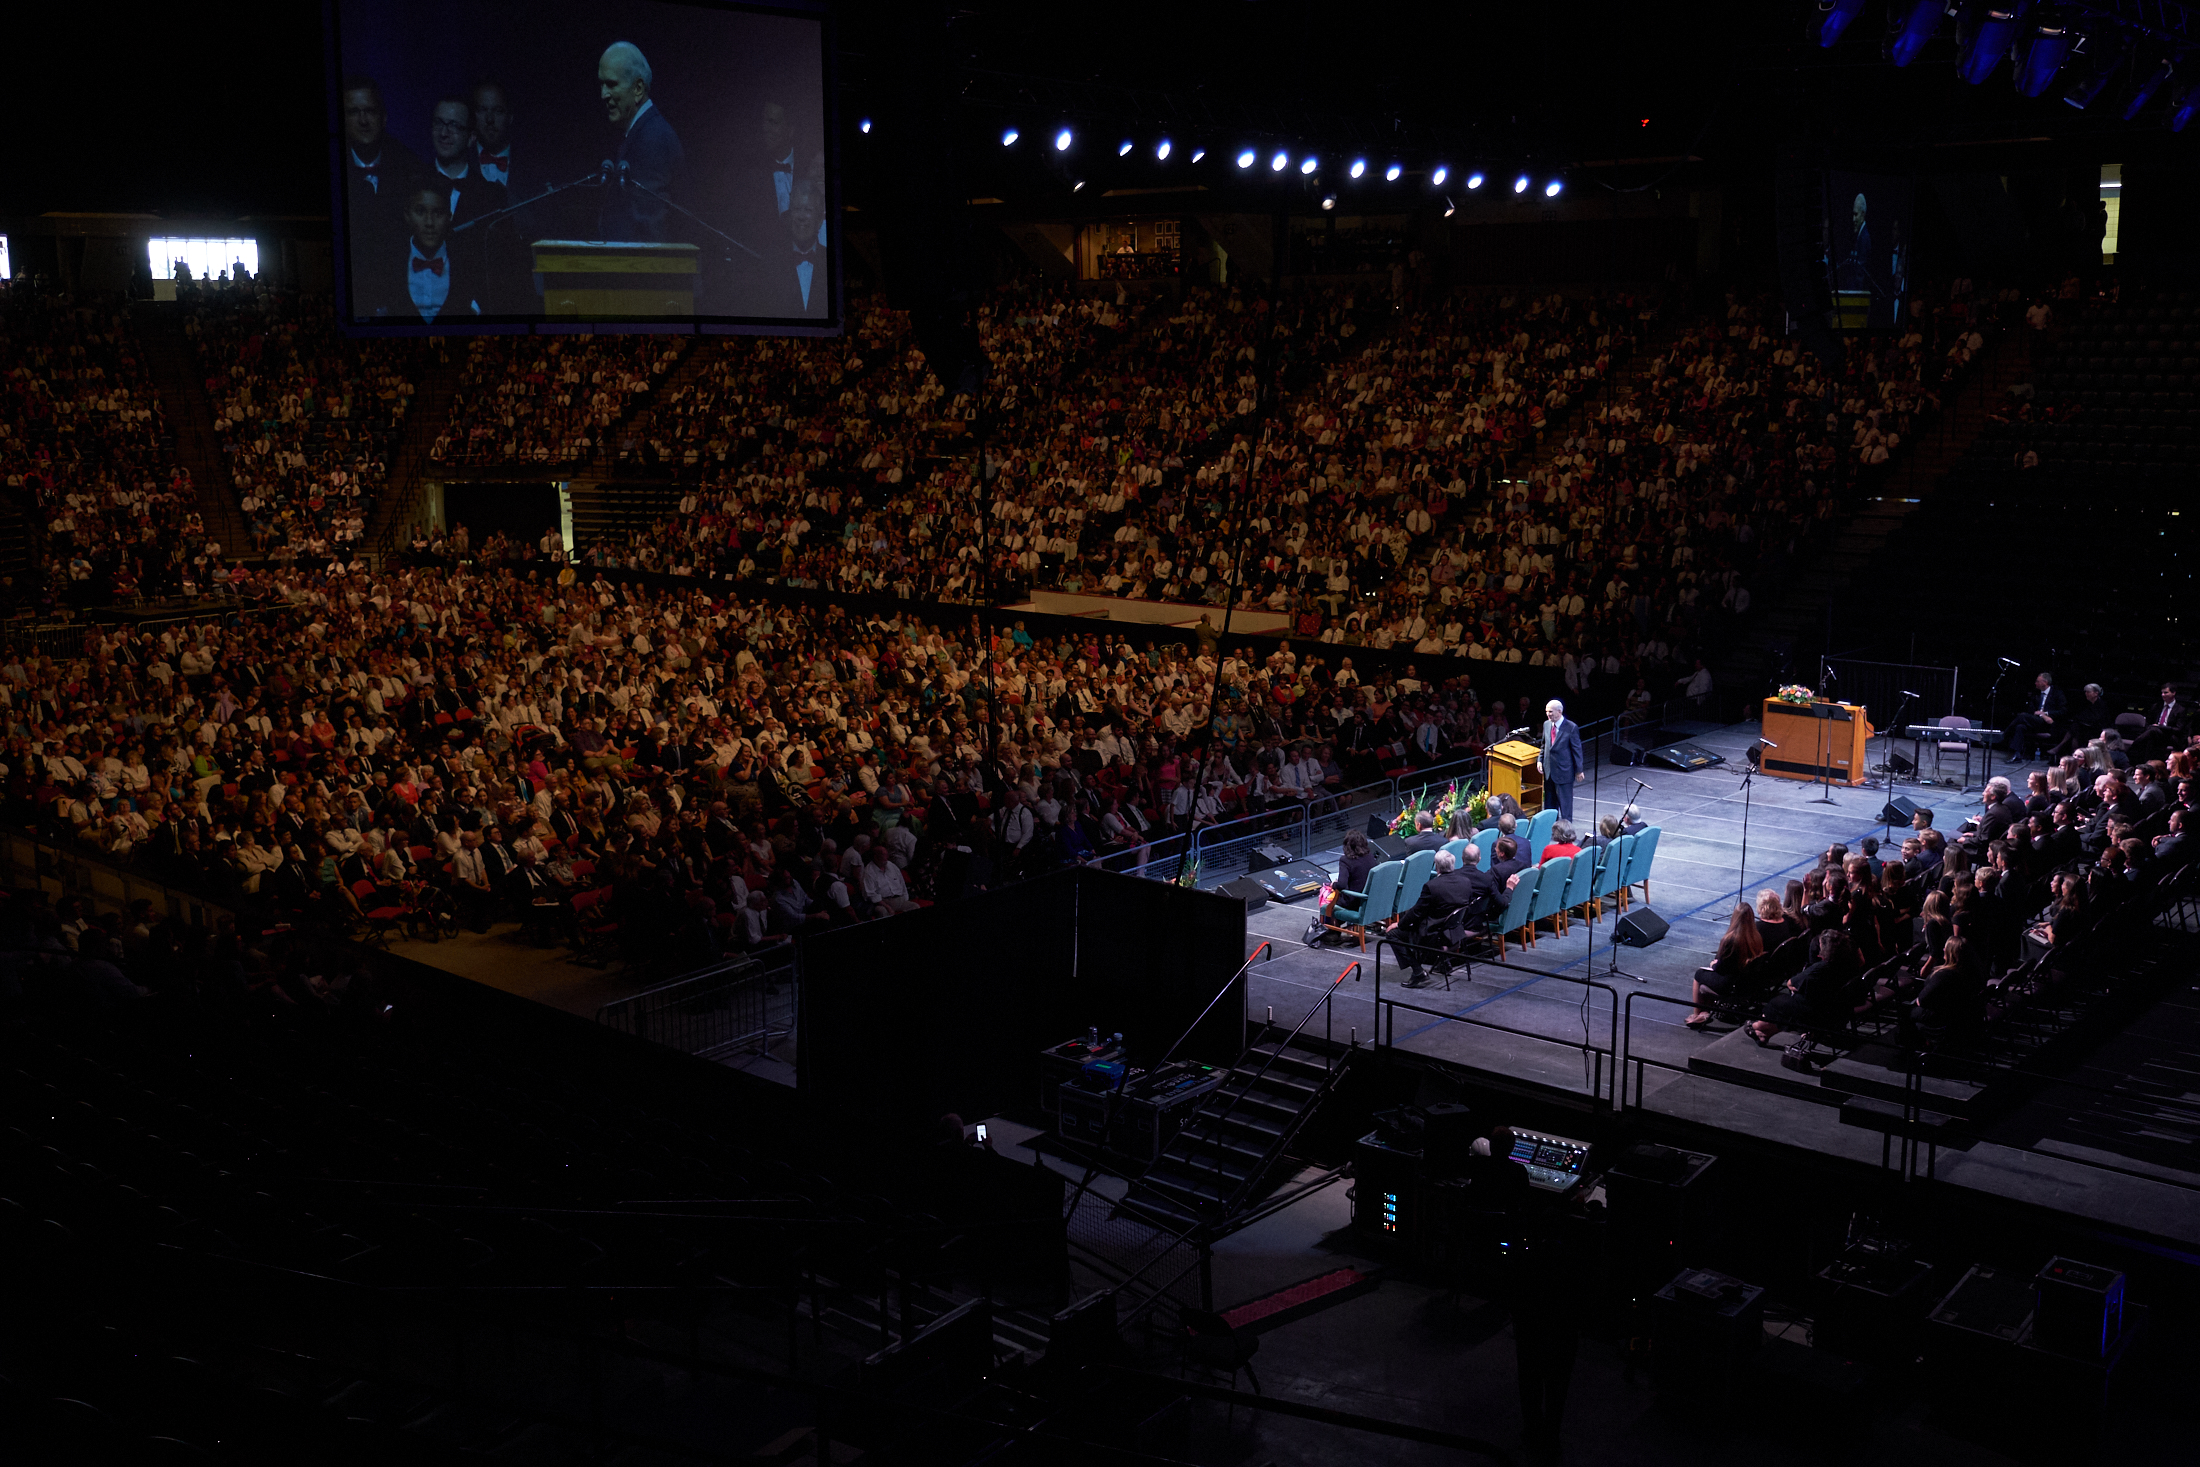 President Russell M. Nelson speaks during a devotional to close to 4,000 Latter-day Saints gathered at the FirstOntario Centre in Hamilton, Ontario, on Sunday, Aug. 19, 2018.